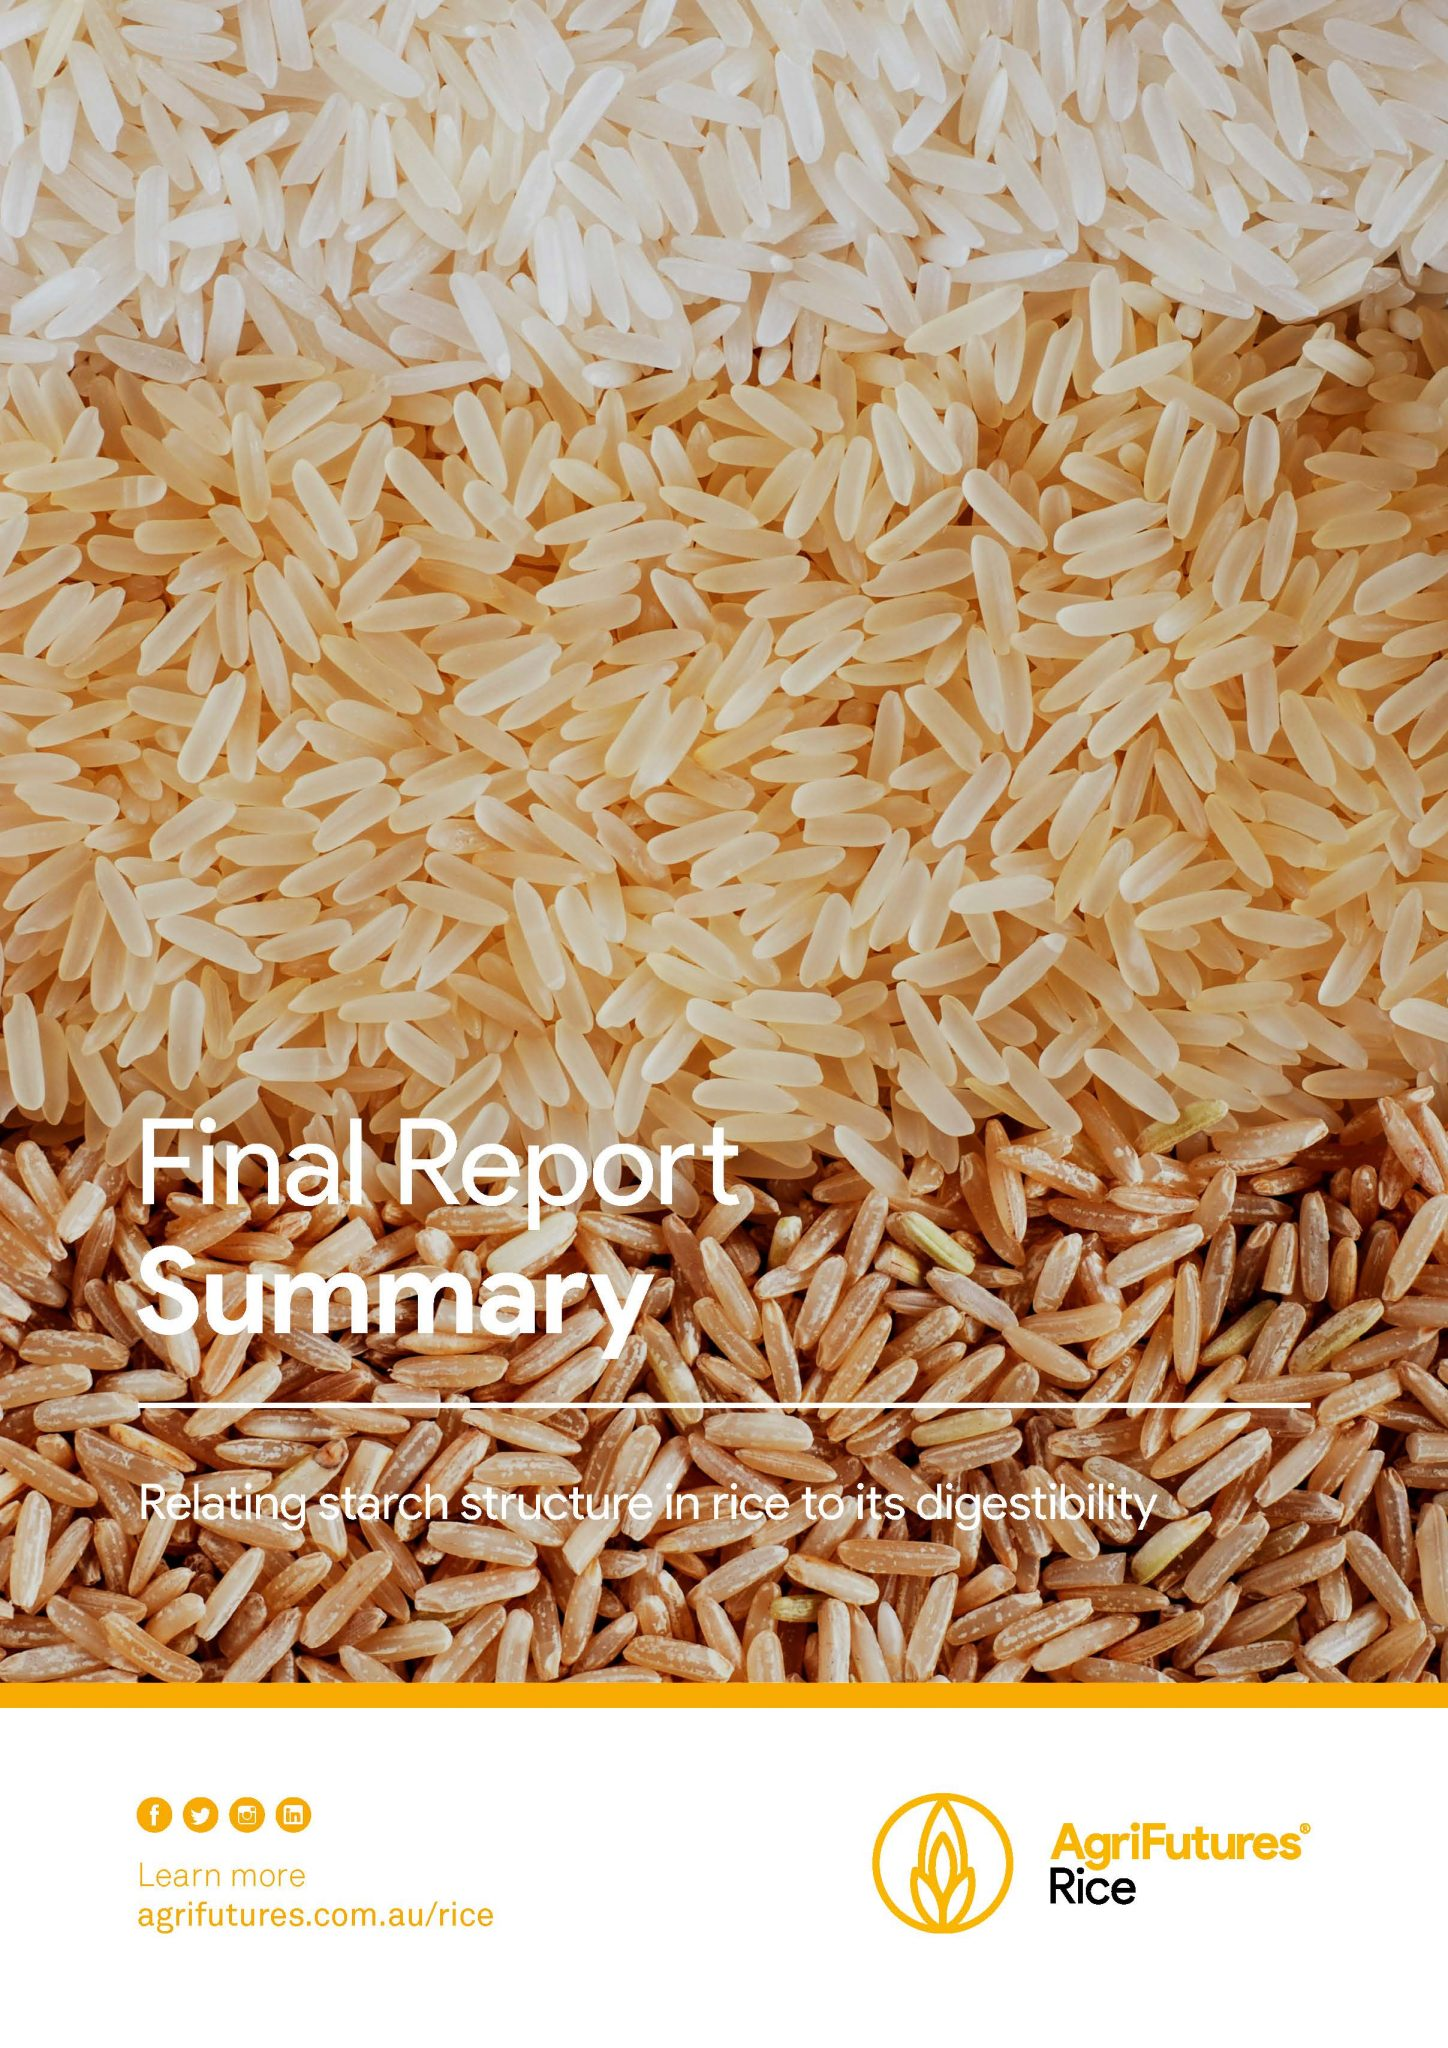 Final Report Summary: Relating starch structure in rice to its digestibility - image